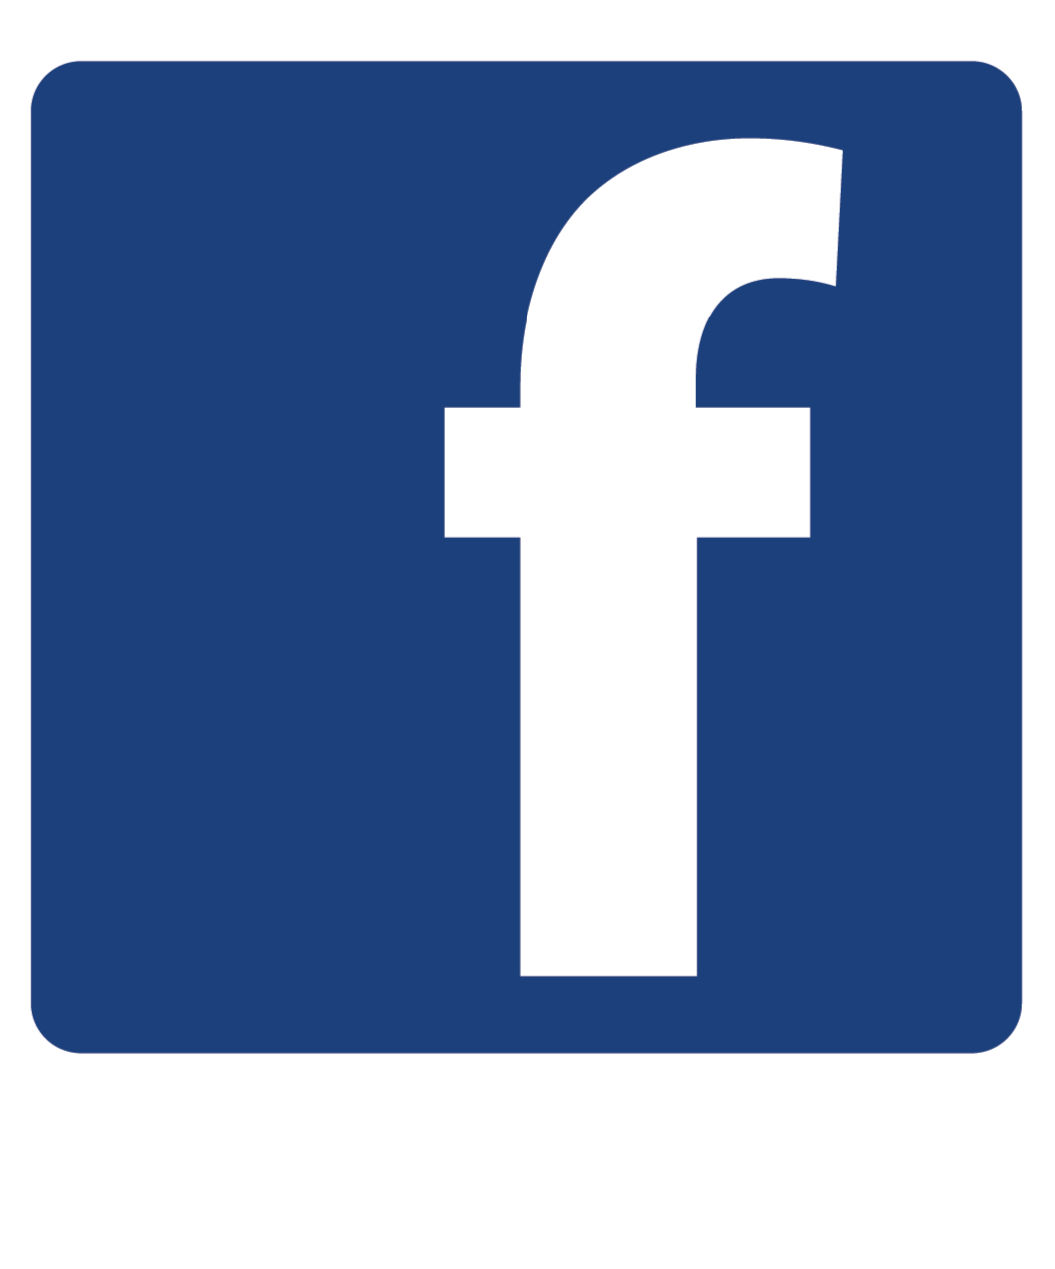 Like Icons Button Facebook, Computer Facebook Logo PNG Image